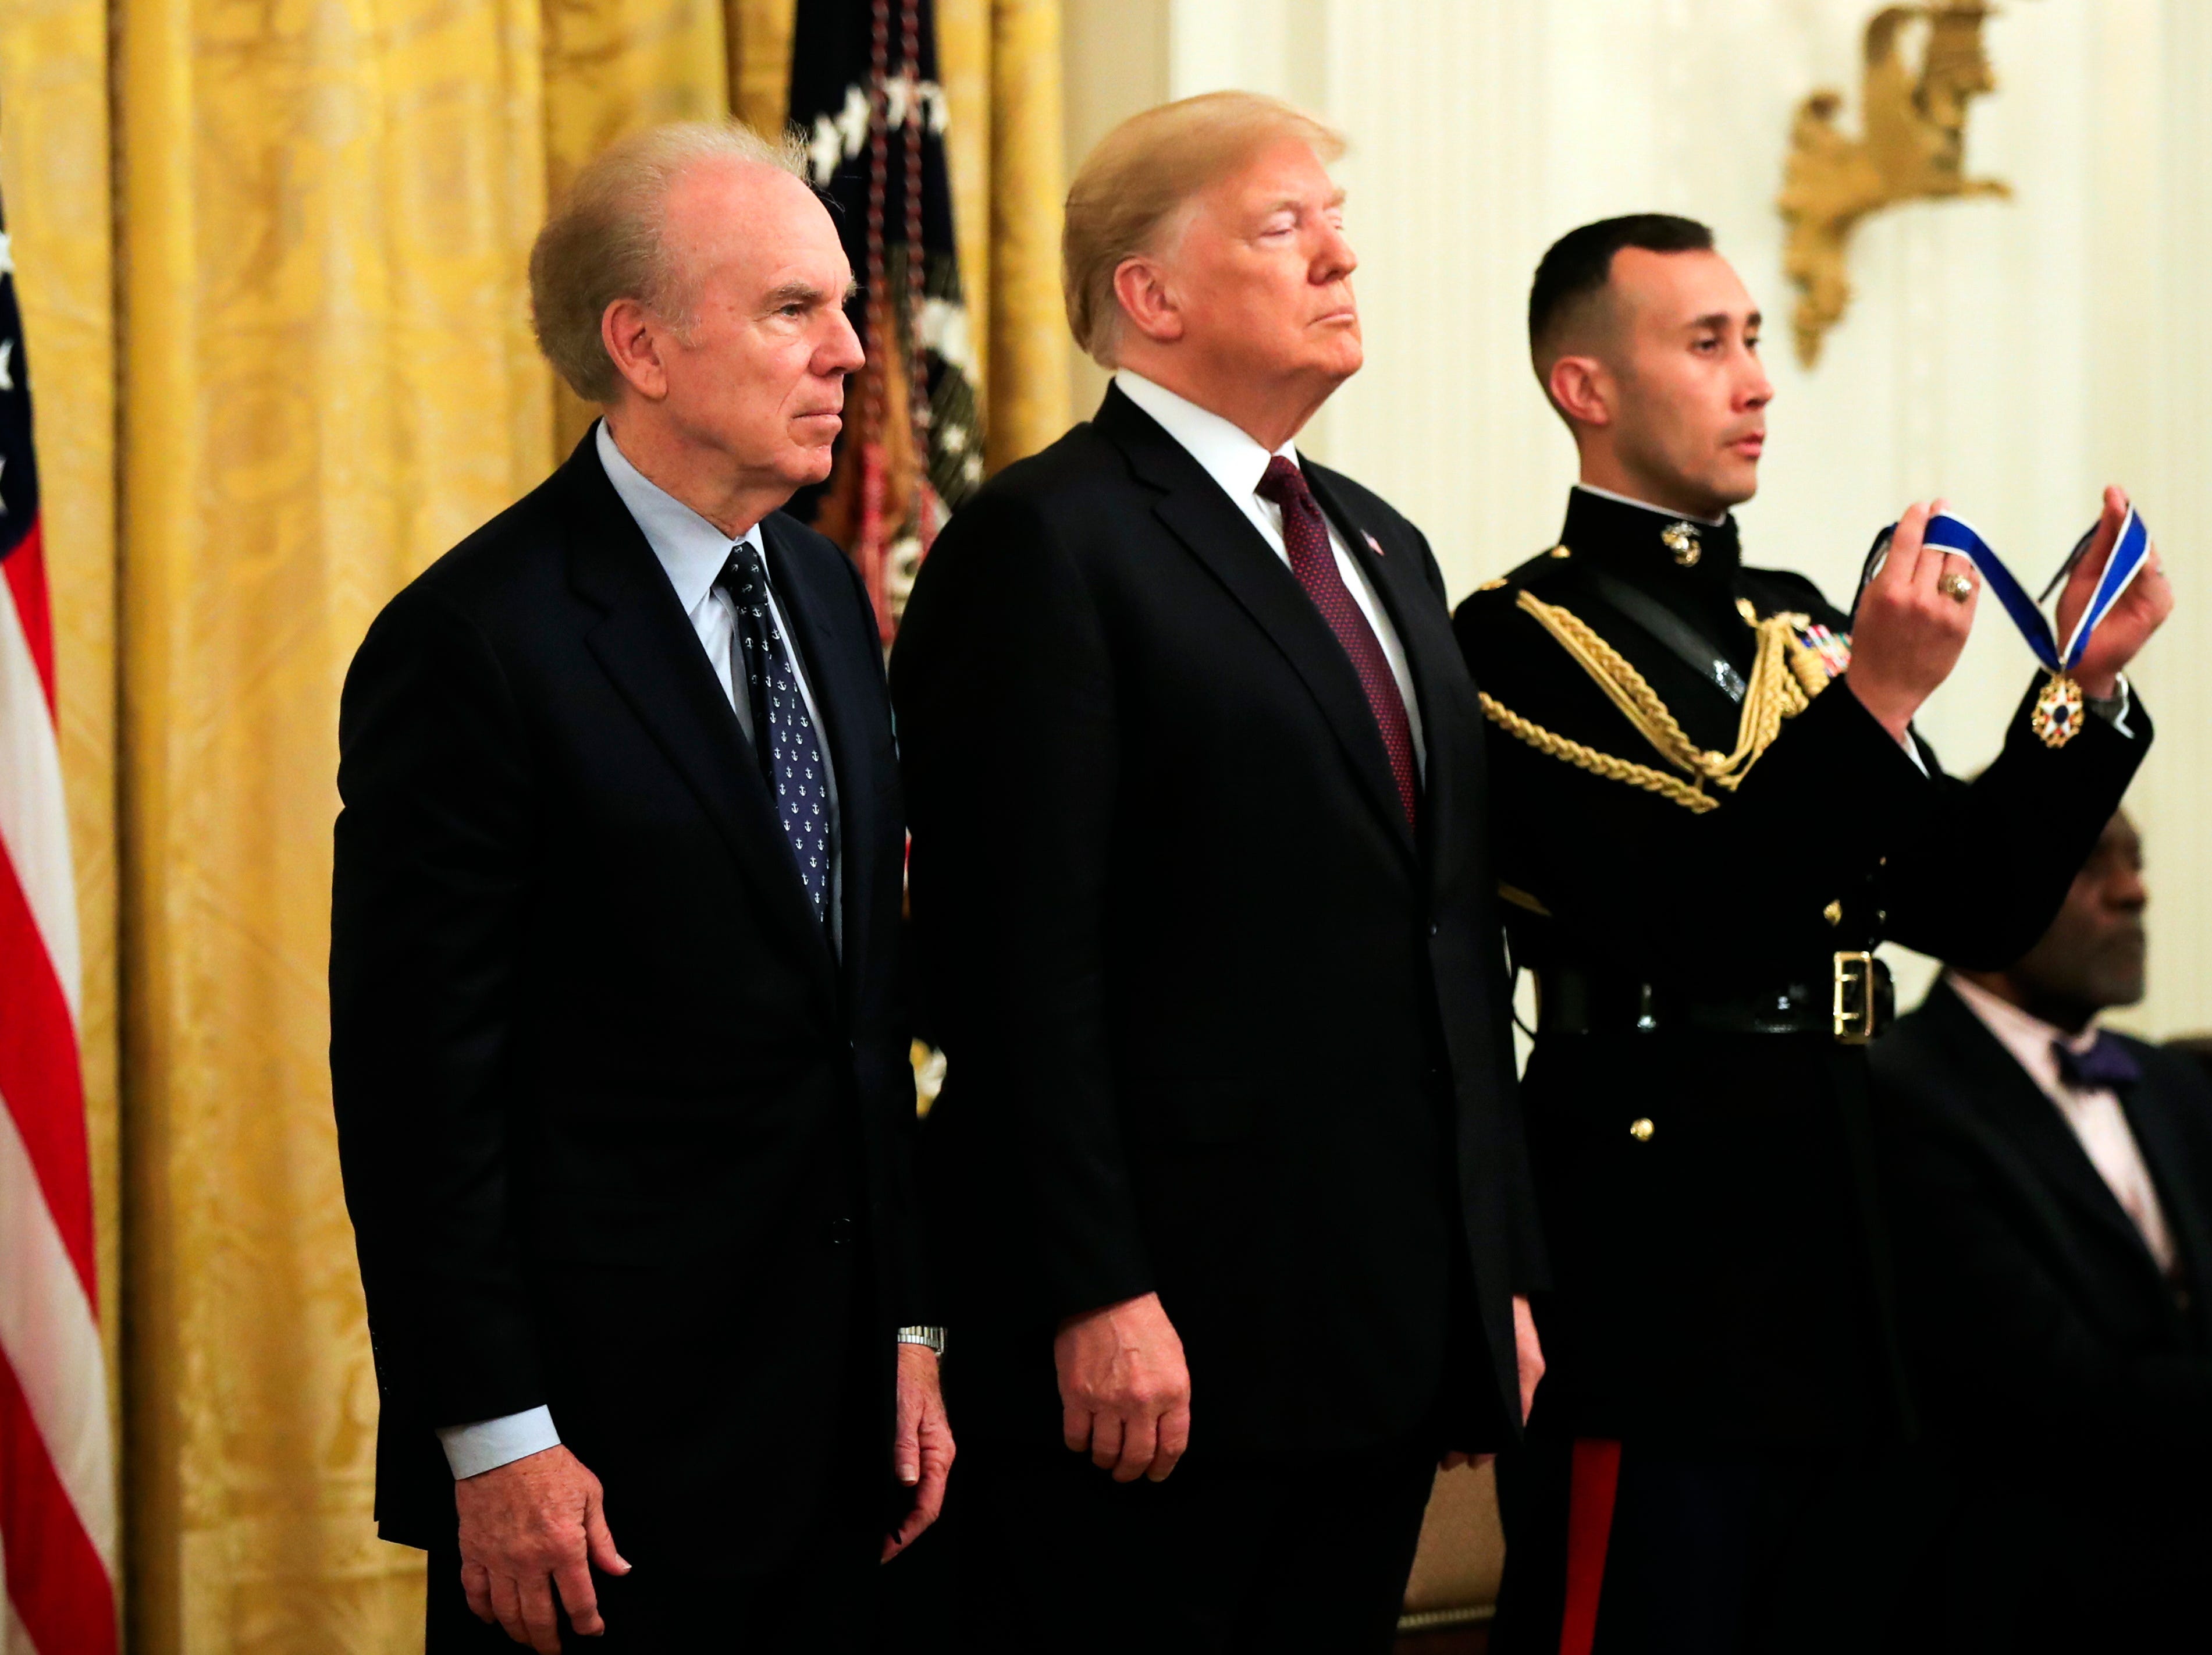 President Donald Trump presents the Presidential Medal of Freedom to Roger Staubach, left, during a ceremony in the East Room of the White House, in Washington, D.C., on Friday, Nov. 16, 2018.